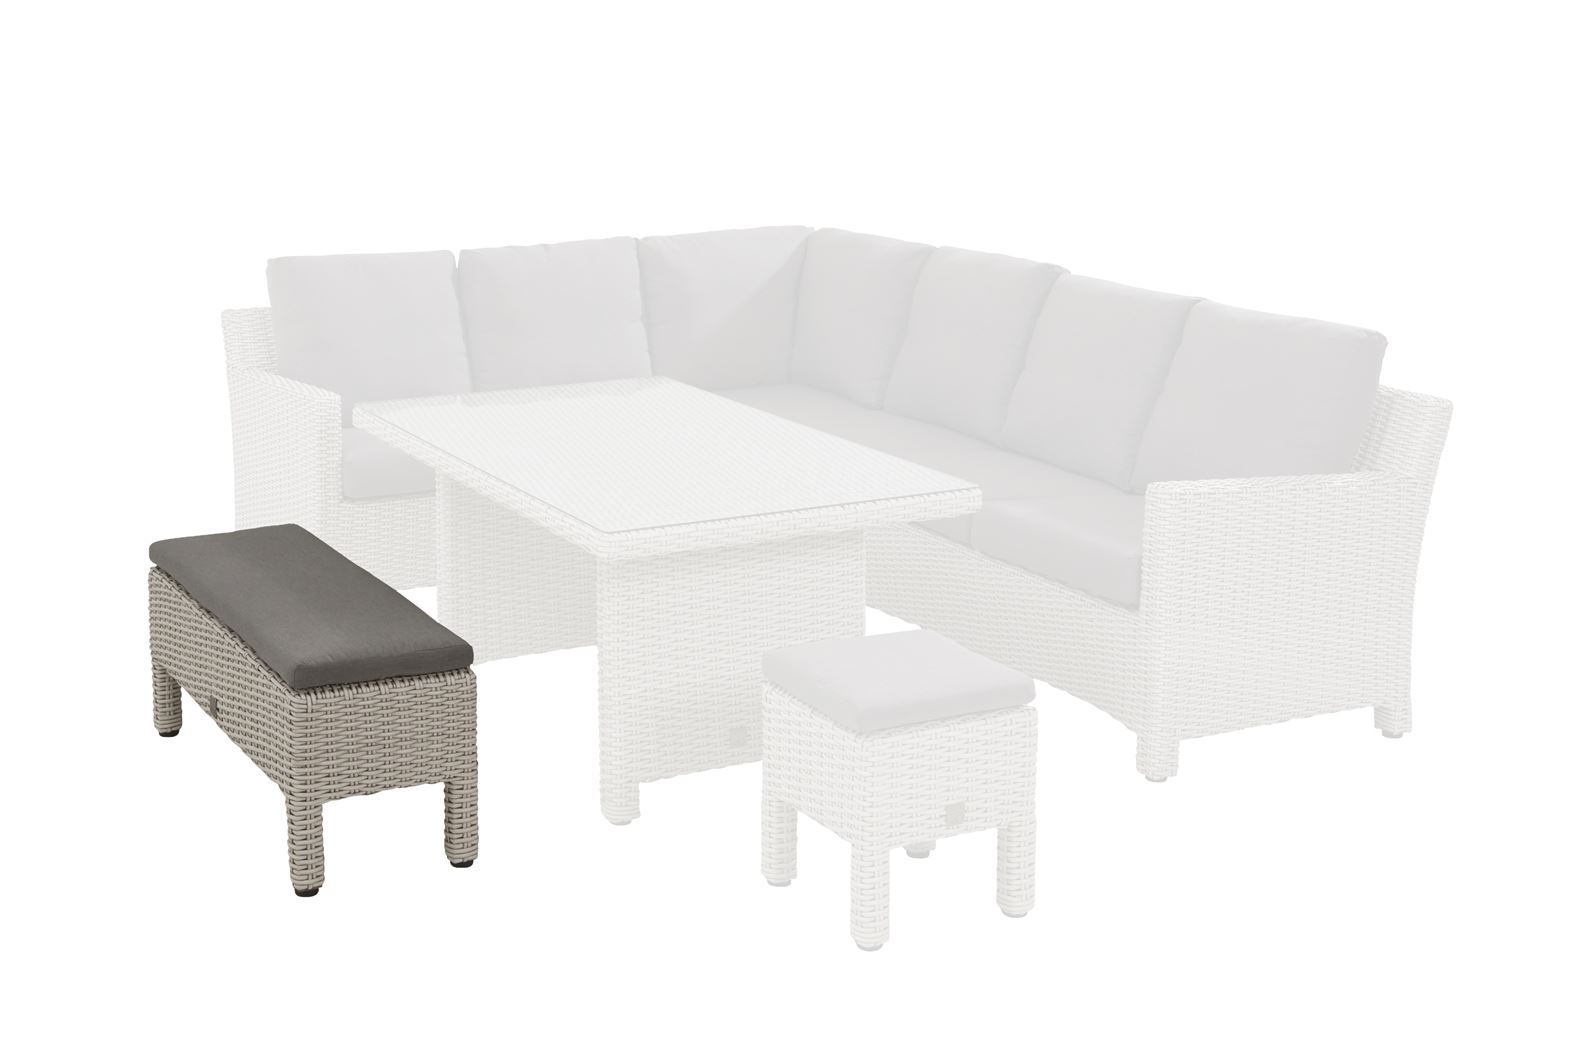 4so adora cosy dining bench (big stool) with cushion frost